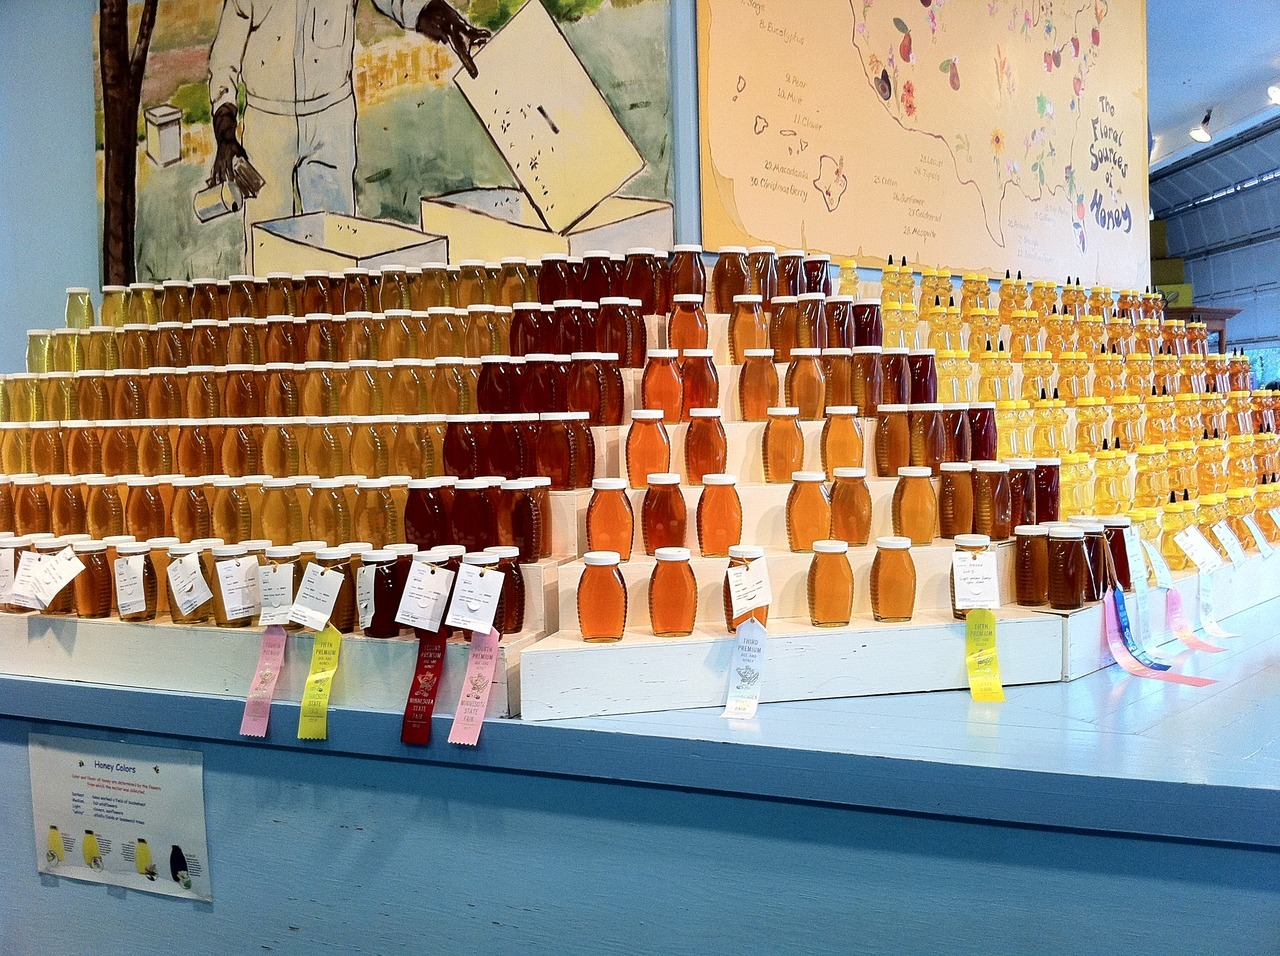 SUBMISSION: The 2012 Liquid Honey Contest Display in the Agriculture-Horticulture Building at the Minnesota State Fair.  Same as last year and every year that I've ever been there (31 years?).  My favorite part of the fair.  It amazes me how consistent these displays are from year to year.  LIQUID (EXTRACTED) HONEYQuality honey, containing no more than 18.6% moisture, packed in one (1) lb. queenline or classic jars, fittedwith appropriate metal or plastic lids. Entry to consist of 12 jars/bottles. Score Criteria - Liquid HoneyContainer - appearance and cleanliness……………………………………………………….10Color - conformity to schedule ……………………………………………………………………15Volume - accuracy and uniformity of fill…………………………………………………………10Absence of impurities, including froth …………………………………………………………..15Moisture, scaled by percentage ………………………………………………………………….20Clarity - absence of crystals, bubbles …………………………………………………………..20Flavor - absence of off aroma or flavor …………………………………………………………10TOTAL 100